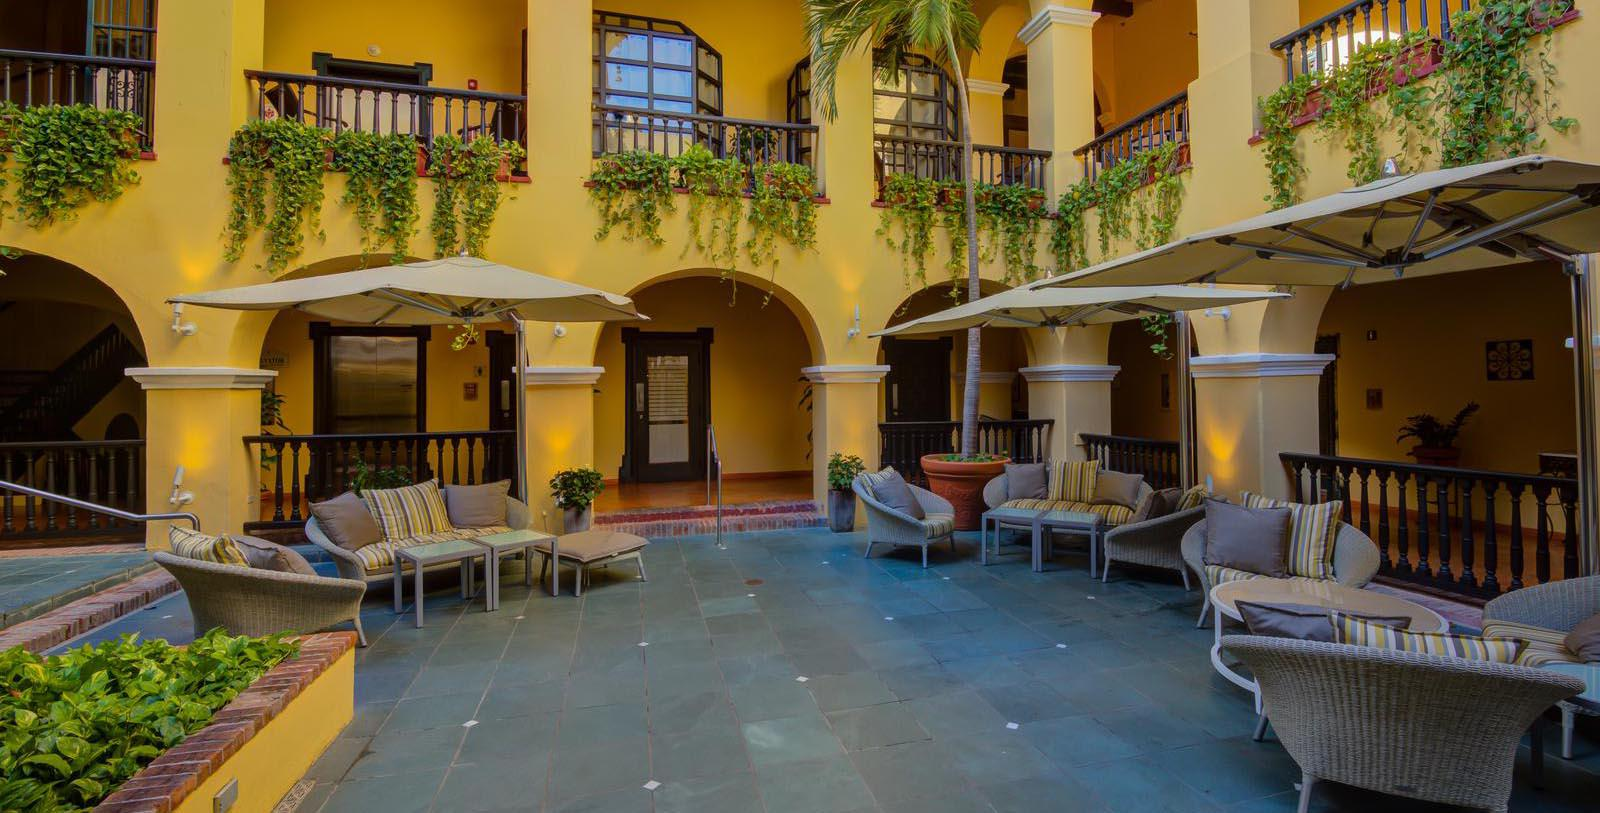 Image of hotel exterior courtyard at El Convento Hotel, 1948, Member of Historic Hotels of America, in San Juan, Puerto Rico, Special Offers, Discounted Rates, Families, Romantic Escape, Honeymoons, Anniversaries, Reunions